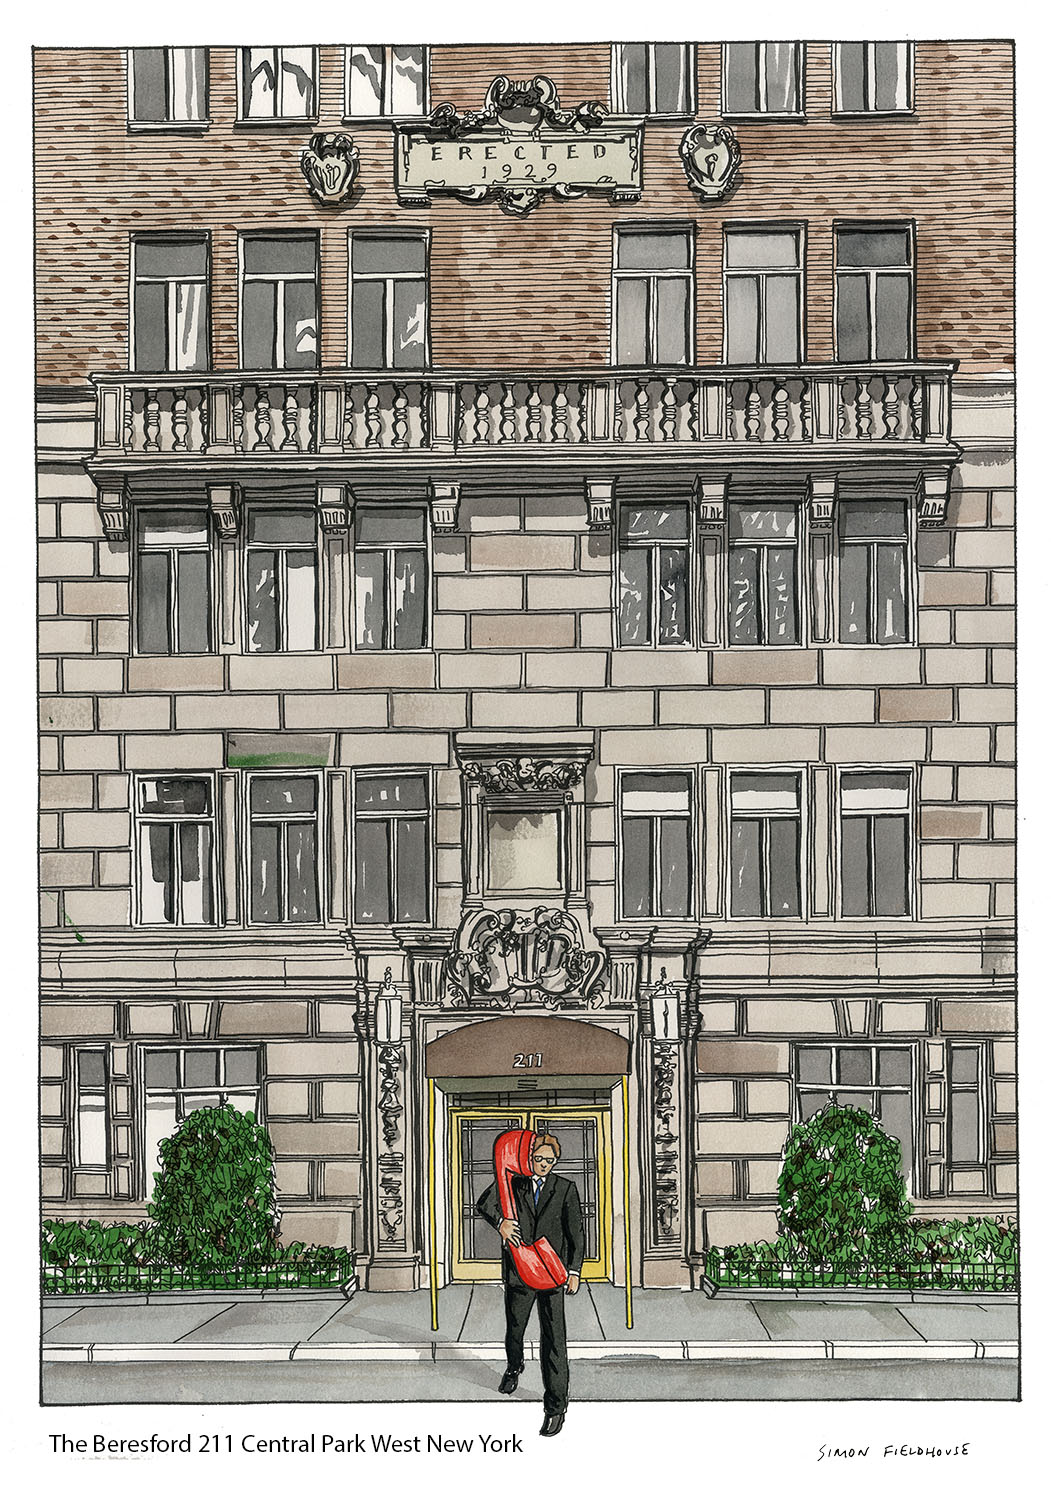 the Beresford 211 Central Park West New York